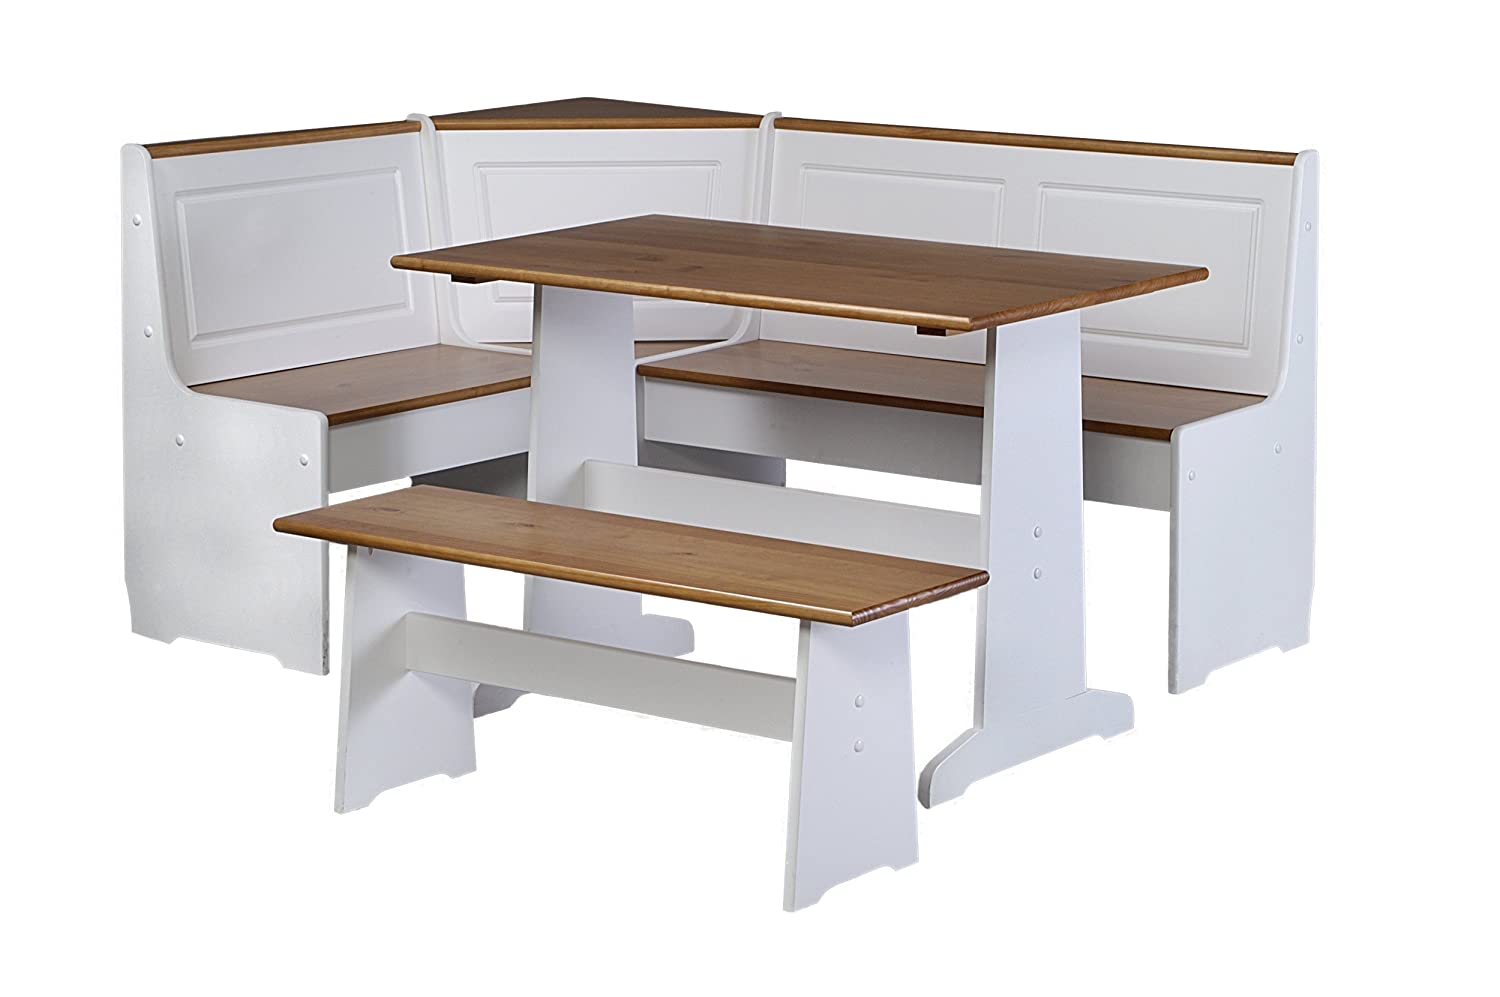 table amish corner breakfast nook set amish corner nook jpg amish corner breakfast nooks